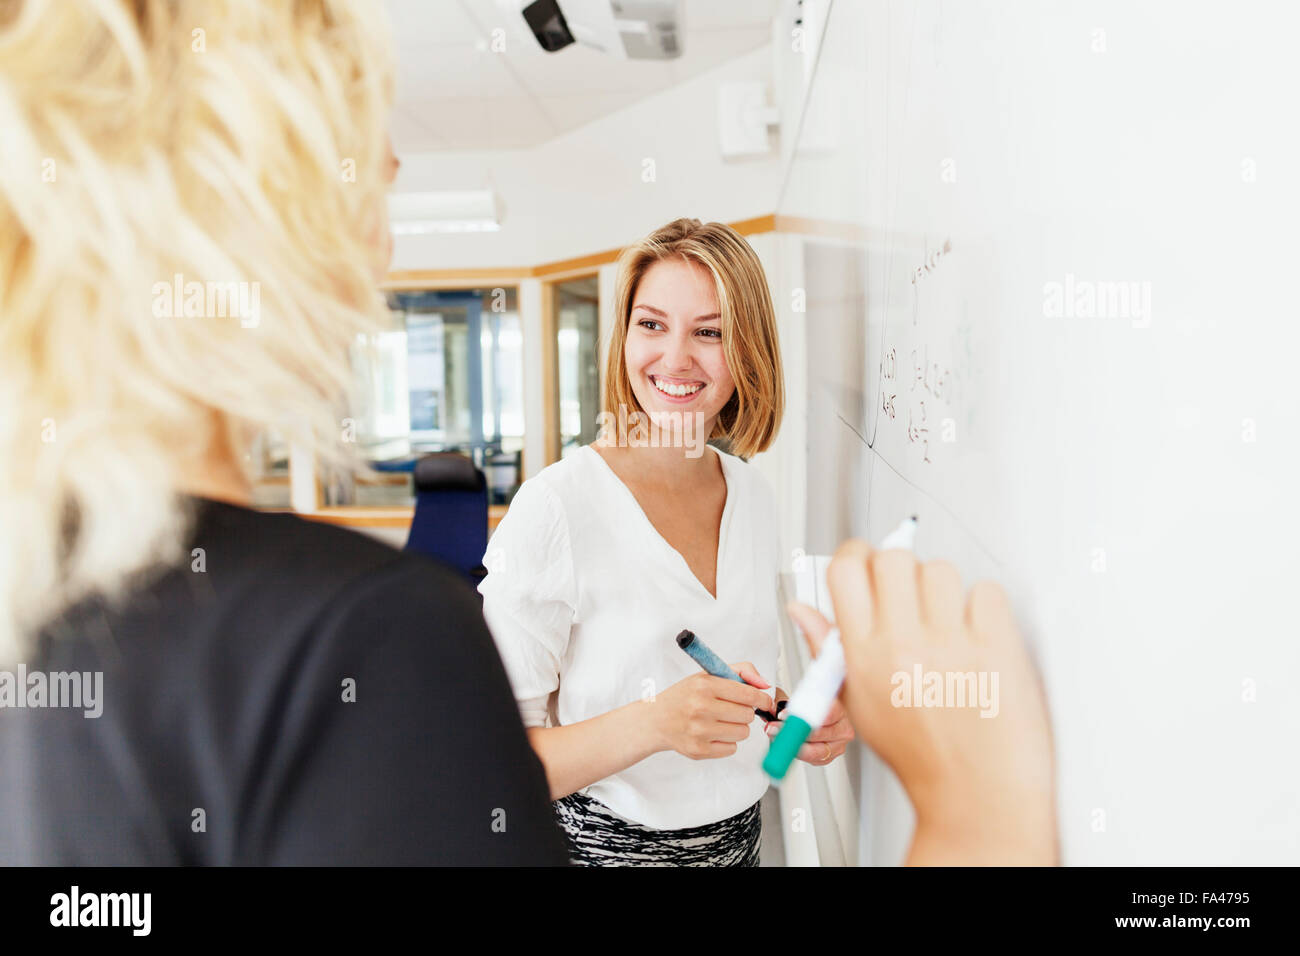 Smiling young woman with classmate standing by whiteboard in classroom - Stock Image